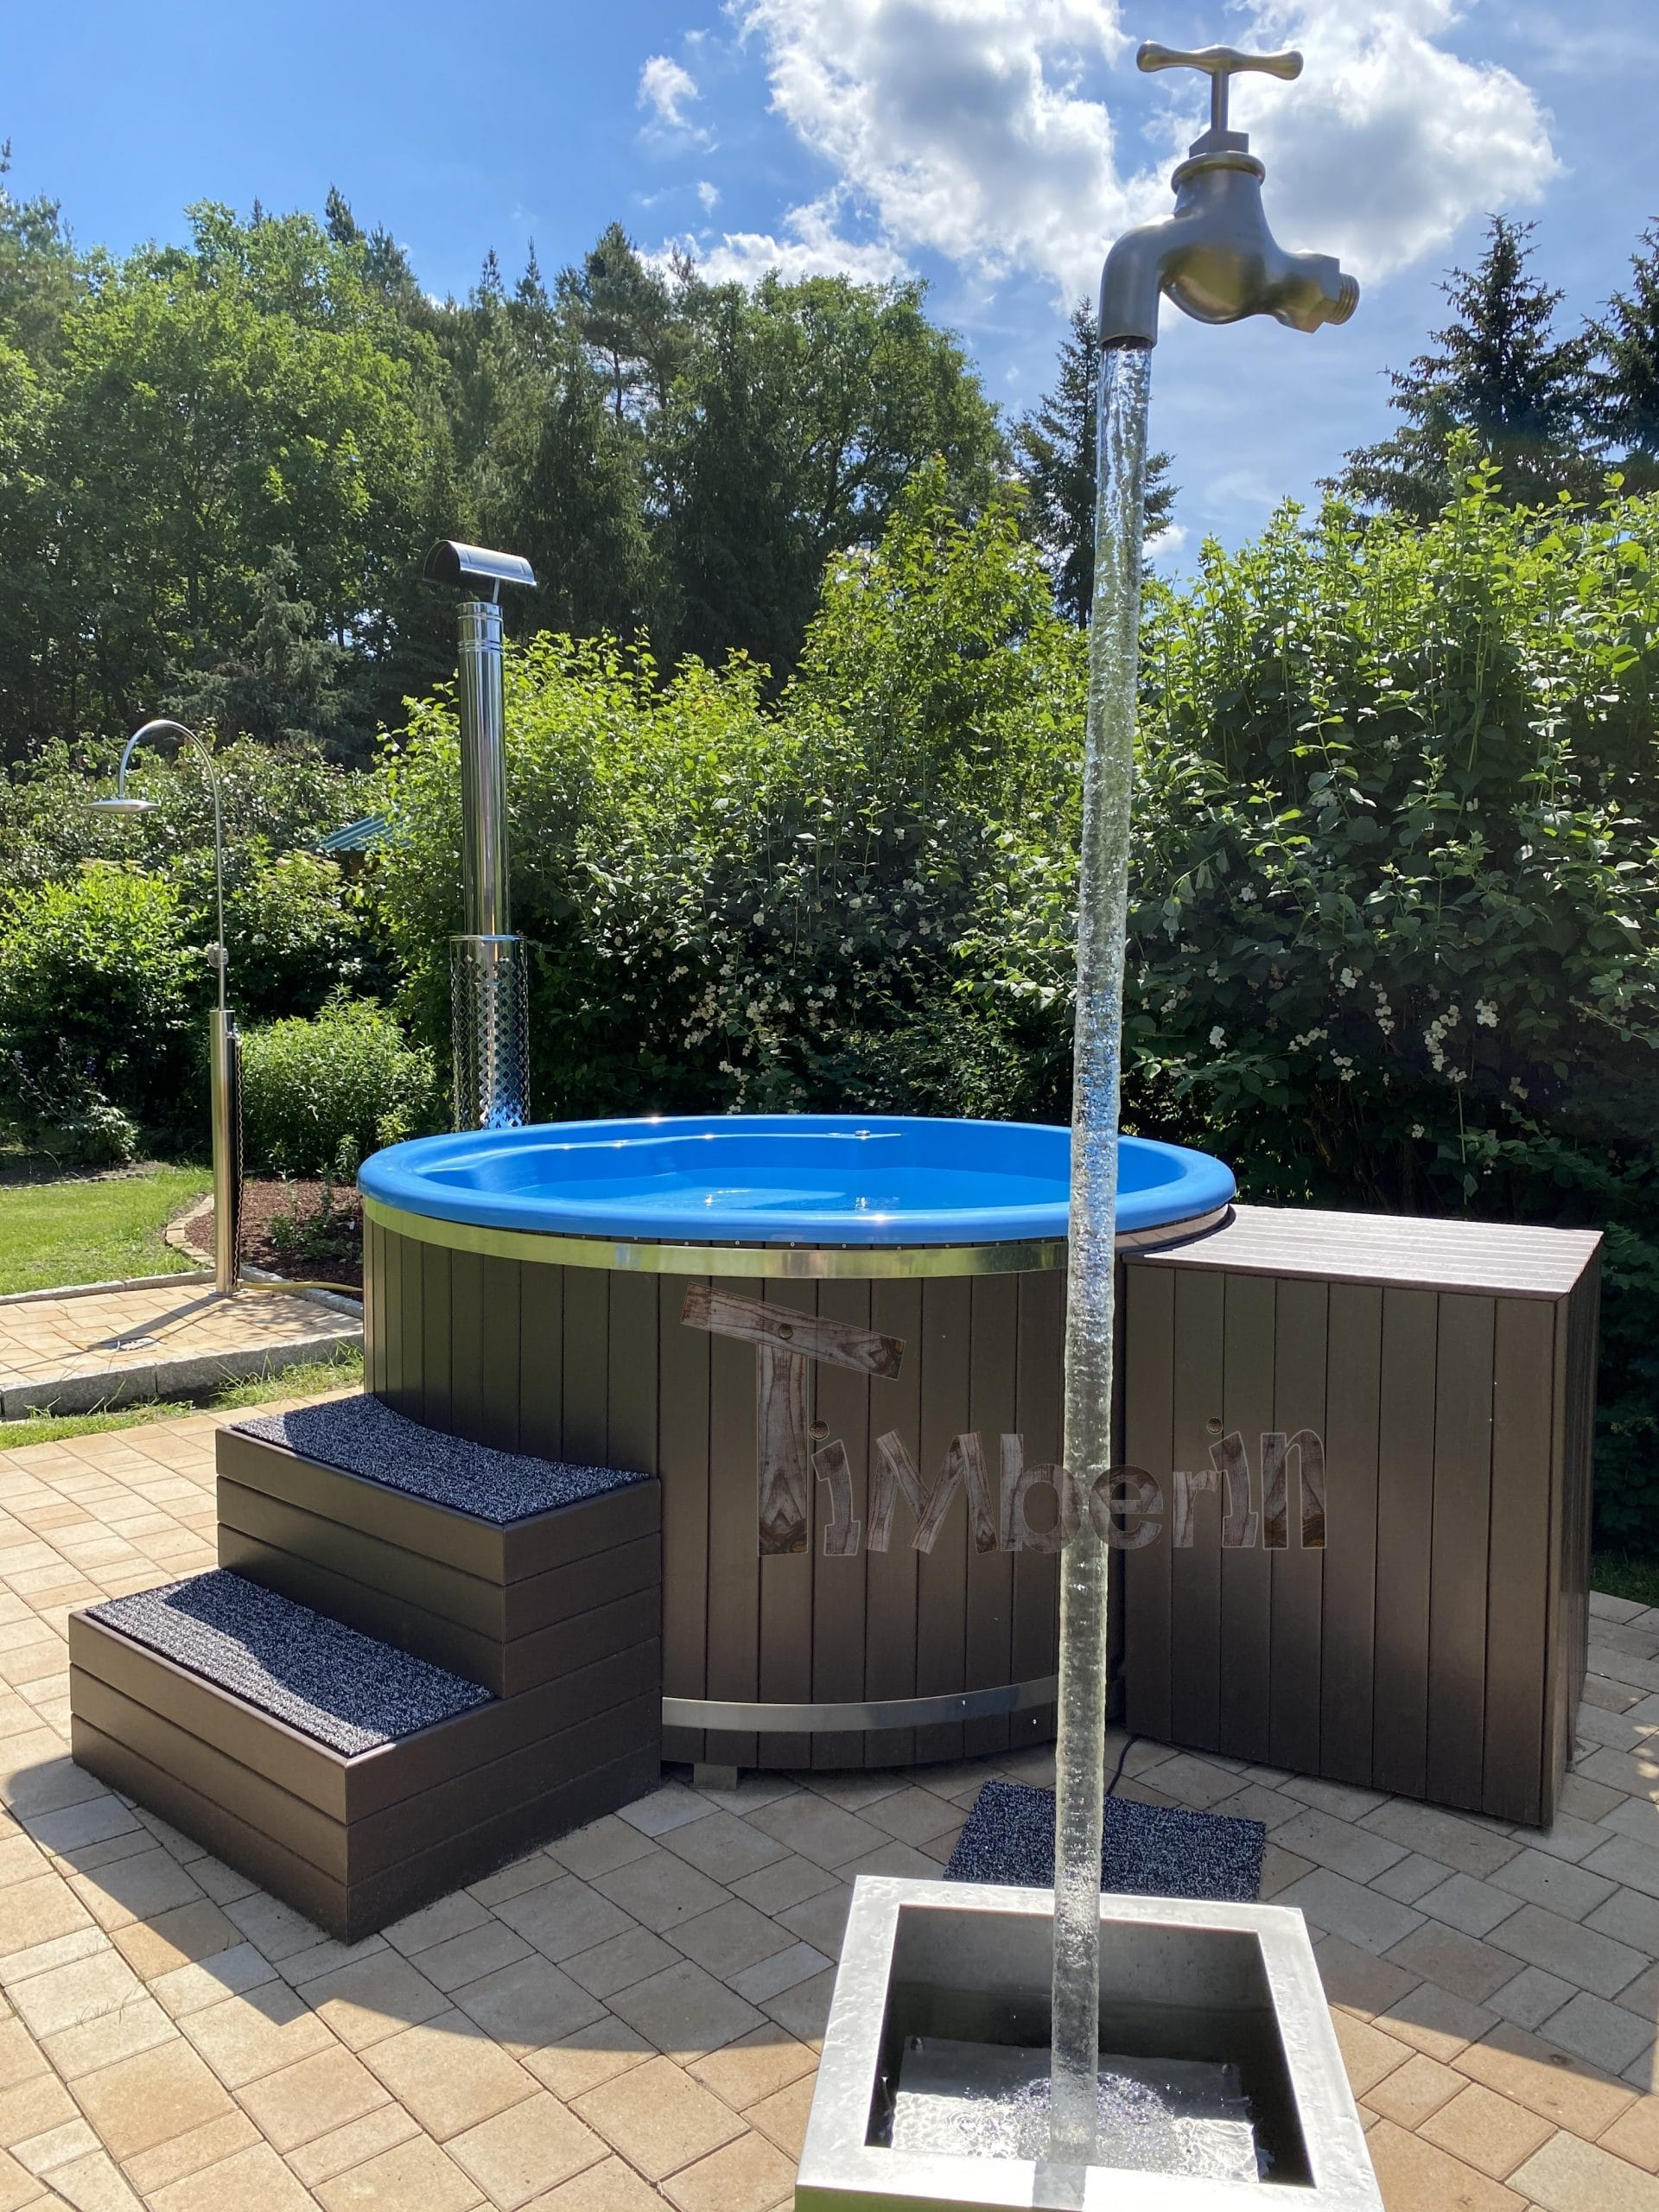 Outdoor-whirlpool-hot-tub-with-Smart-pellet-stove-Rocco-Eggersdorf-Germany-3-scaled Testimonials